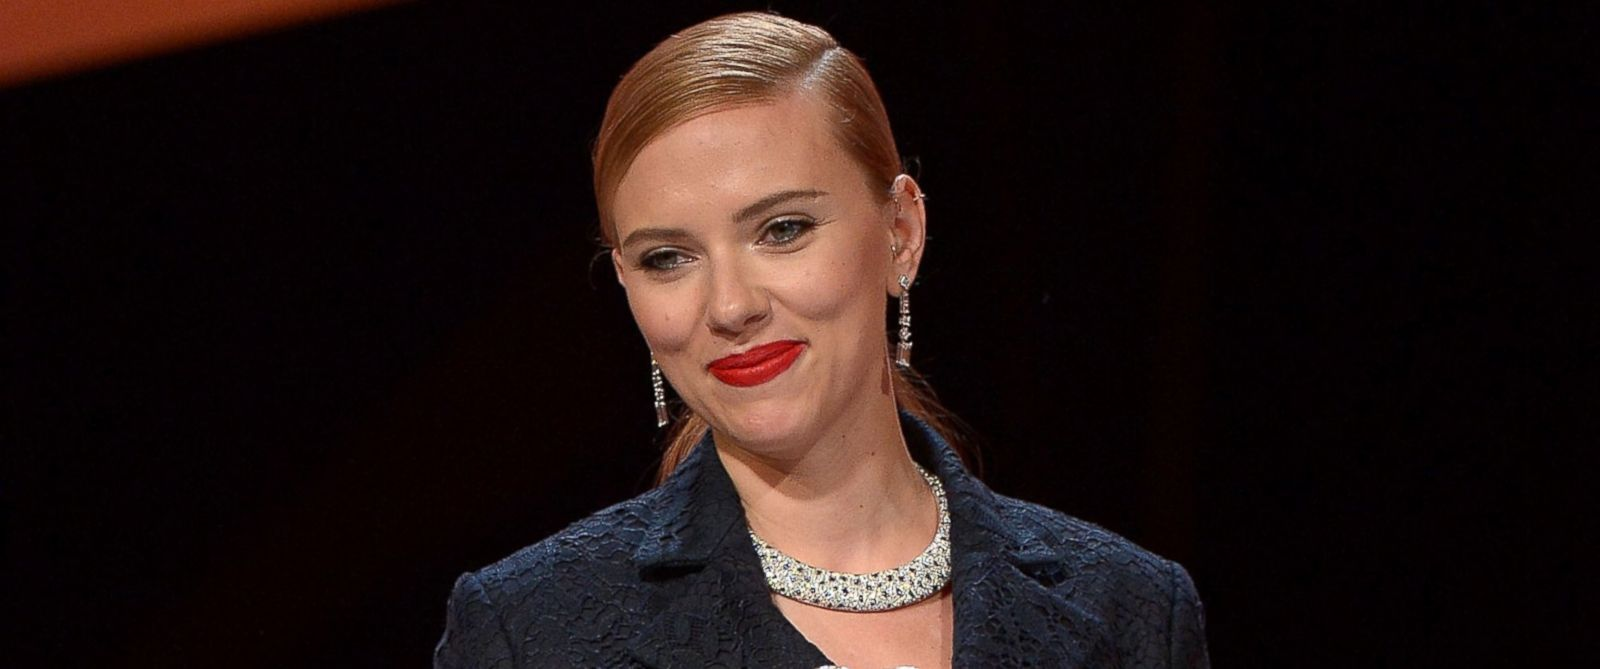 PHOTO: Scarlett Johansson is pictured on Feb. 28, 2014 in Paris, France.